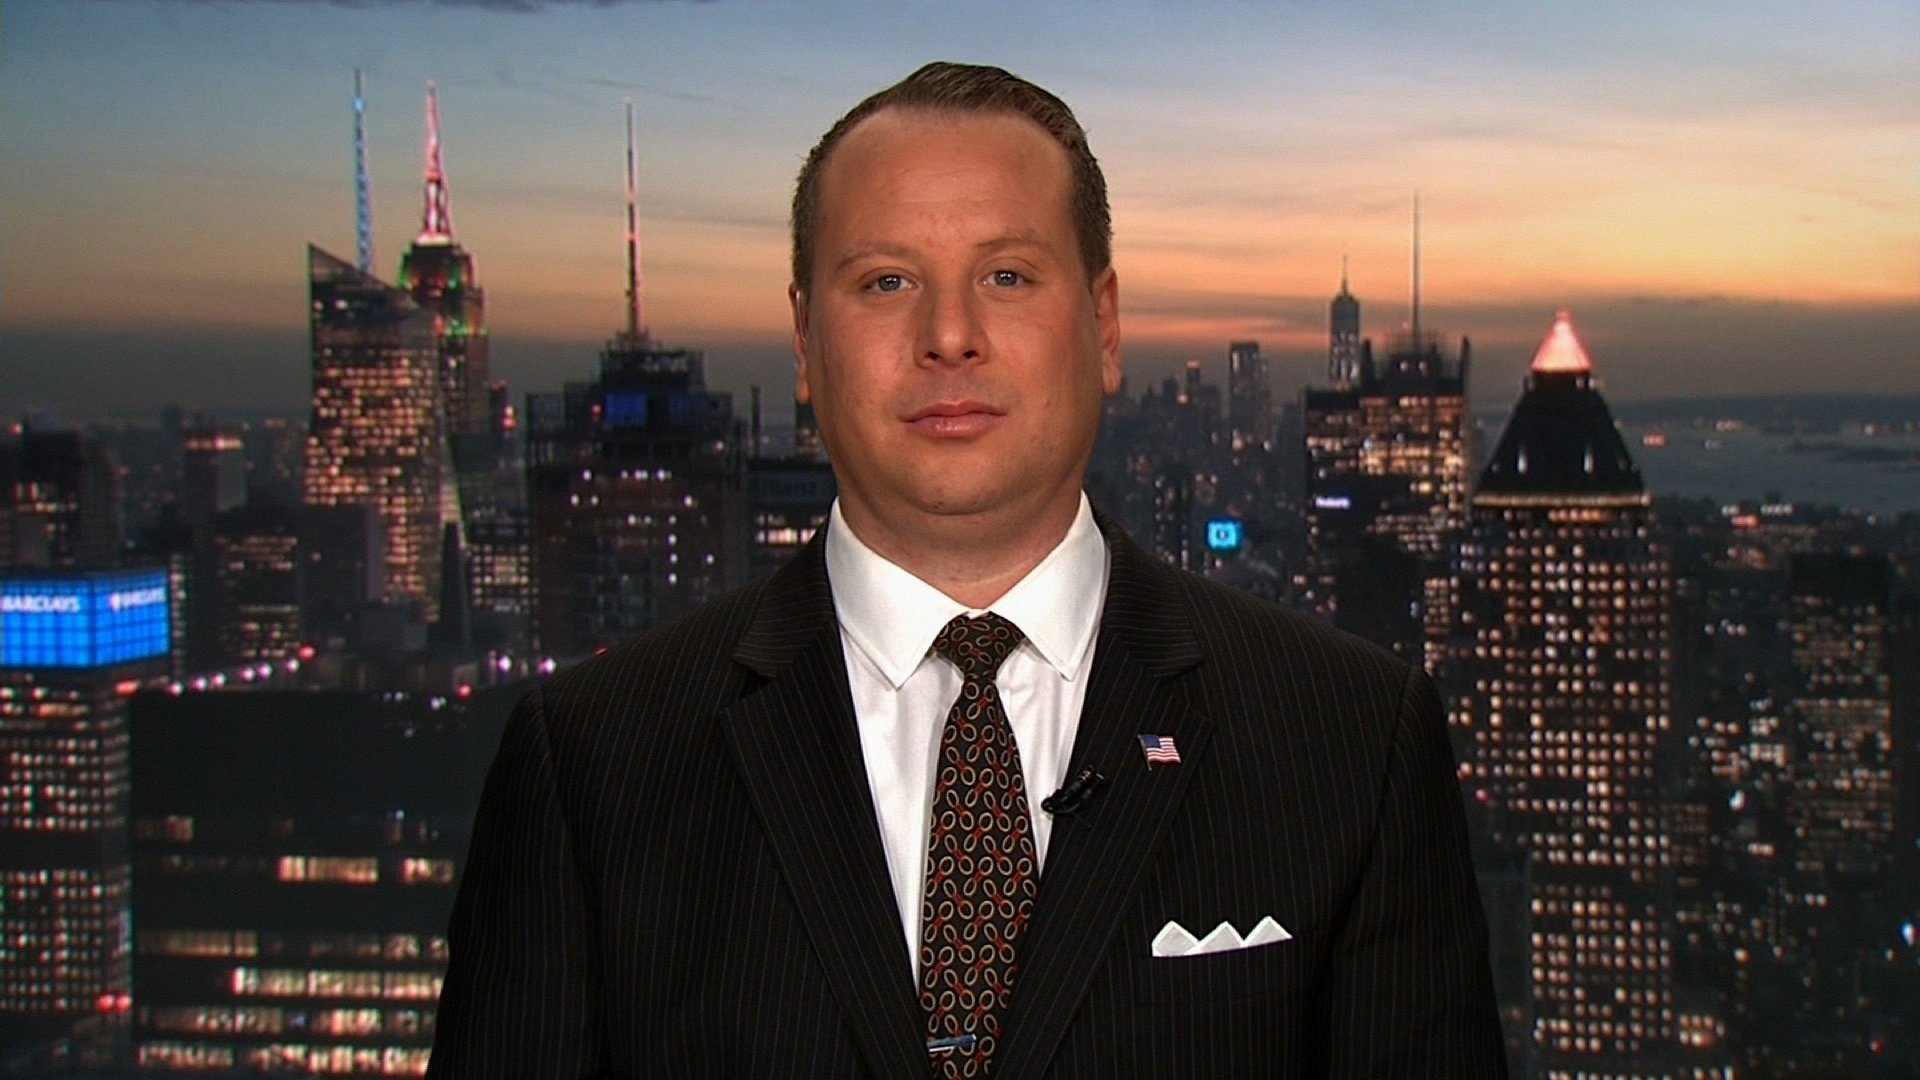 Former Trump campaign aide Sam Nunberg said on March 5, 2018 that he is refusing to comply with a grand jury subpoena in the Russia investigation led by special counsel Robert Mueller. (File Photo)